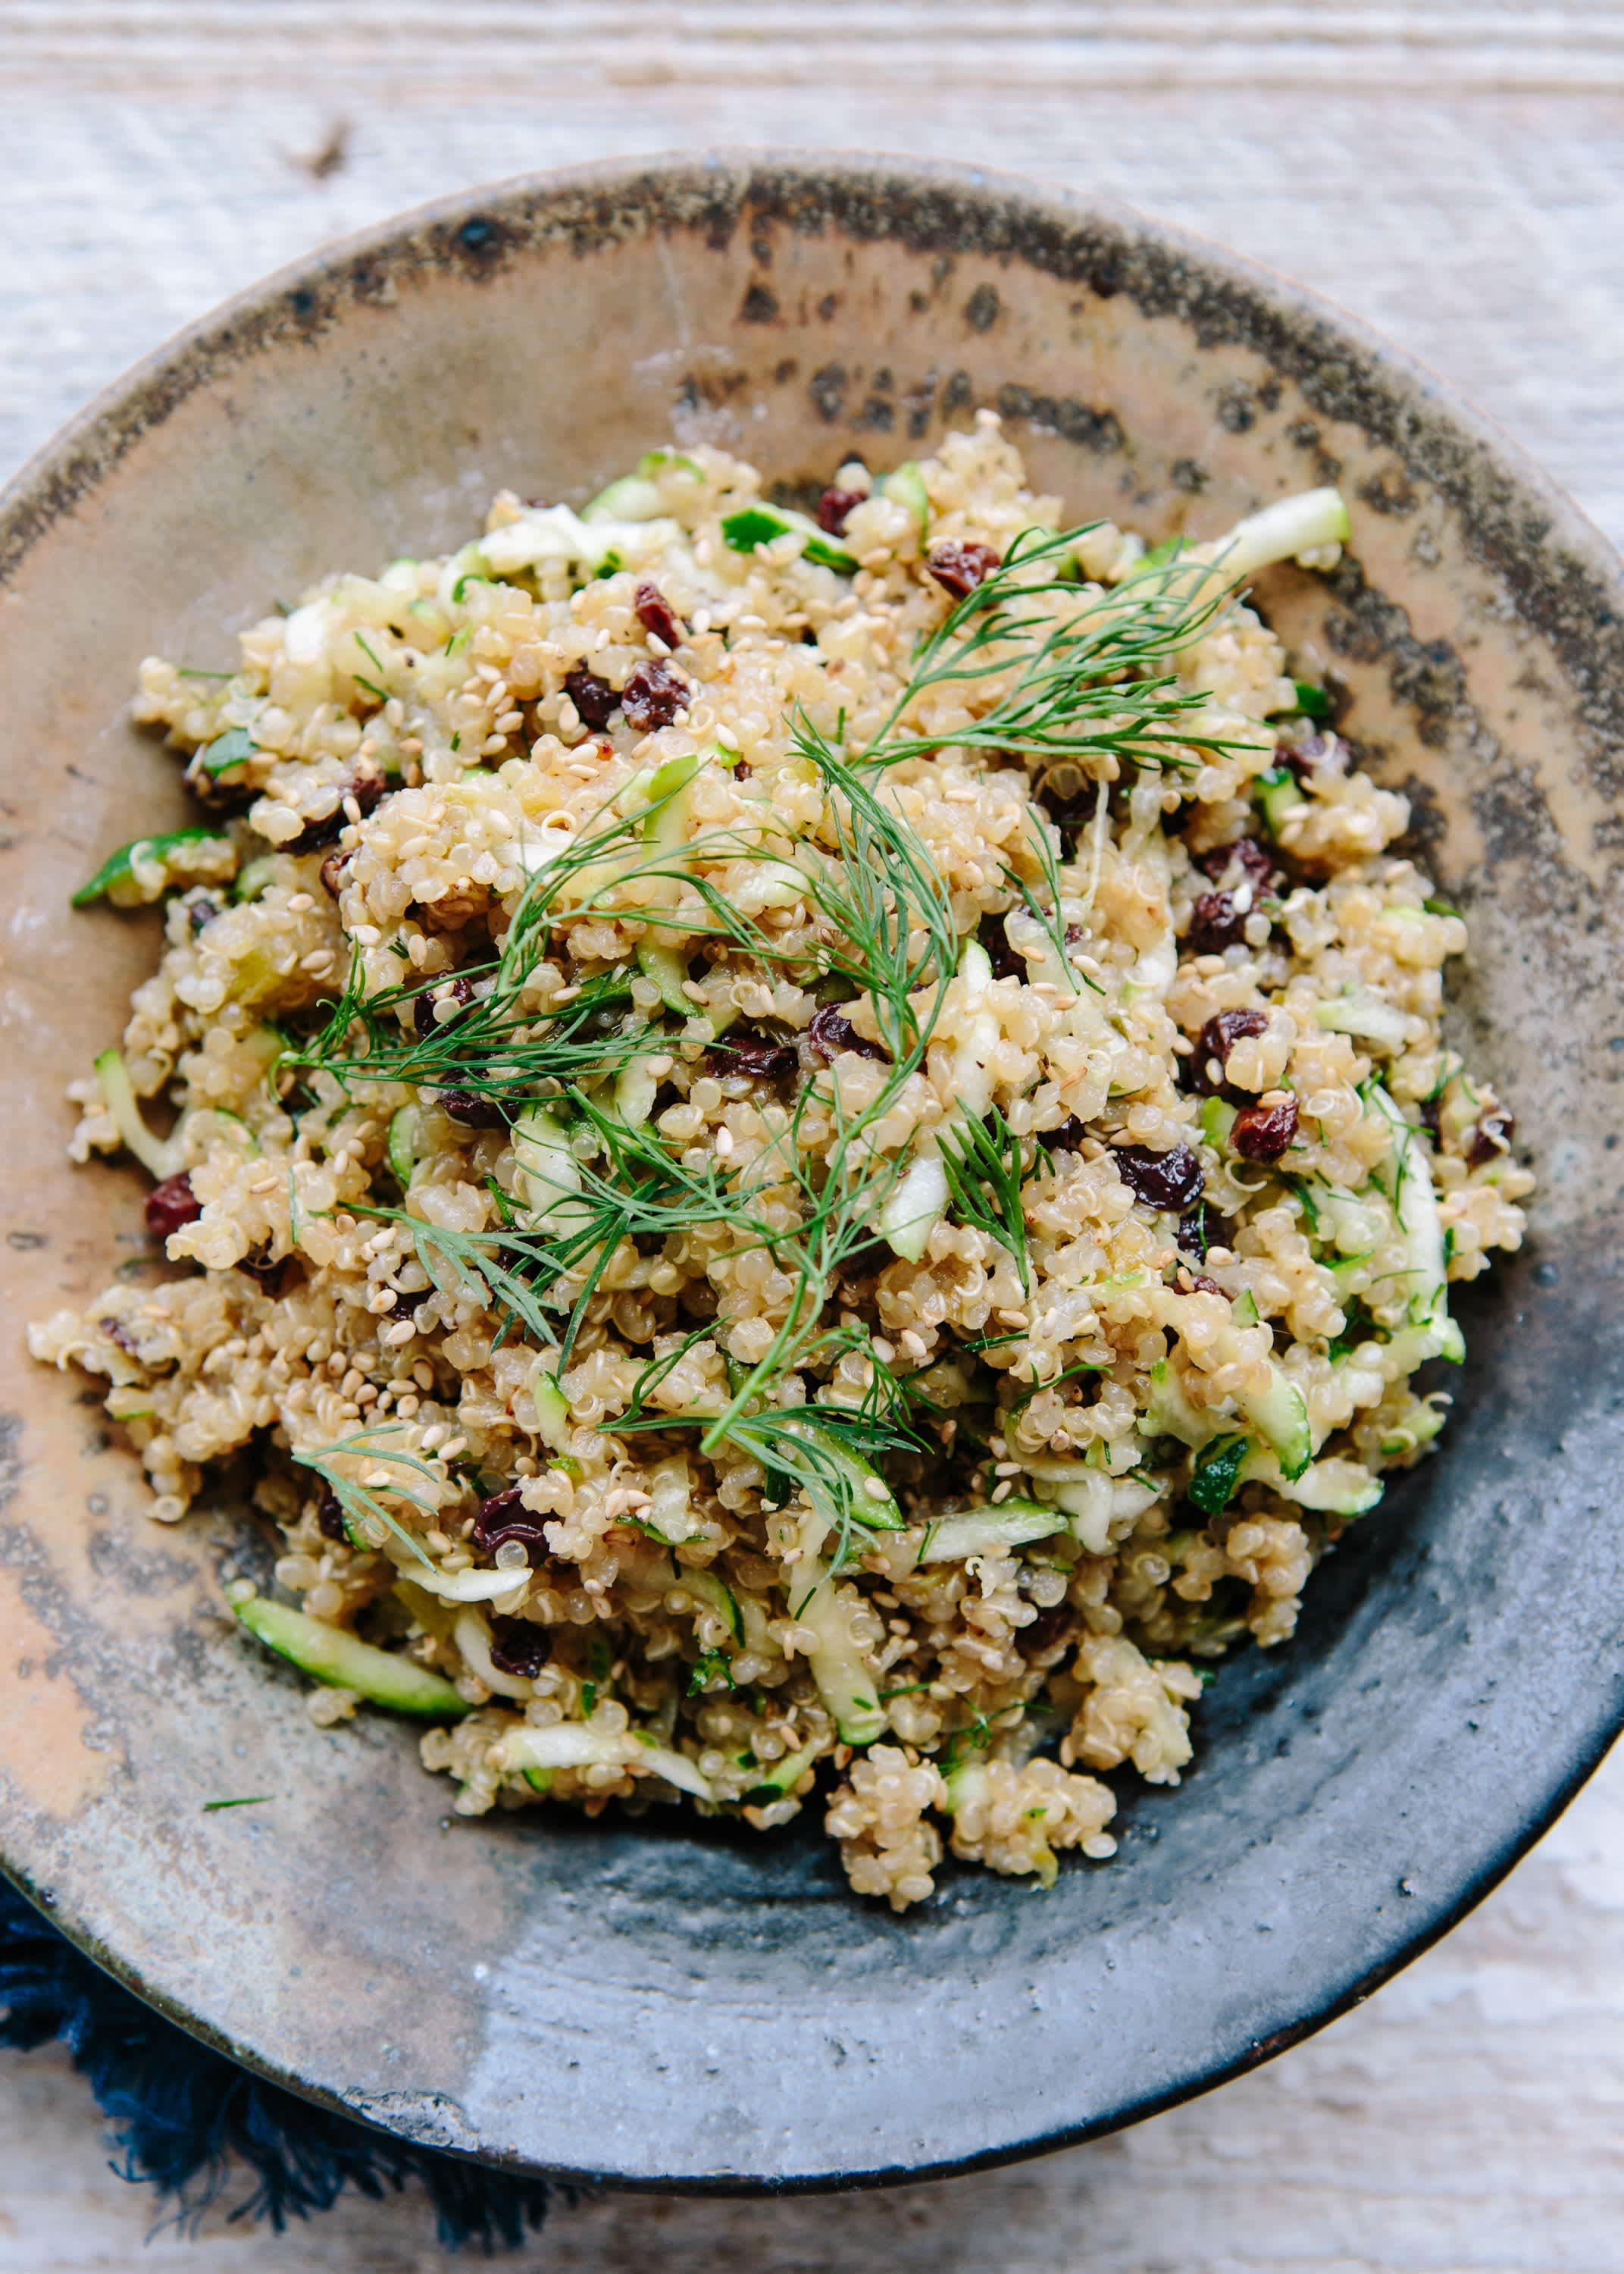 Lemon Quinoa with Currants, Dill, and Zucchini